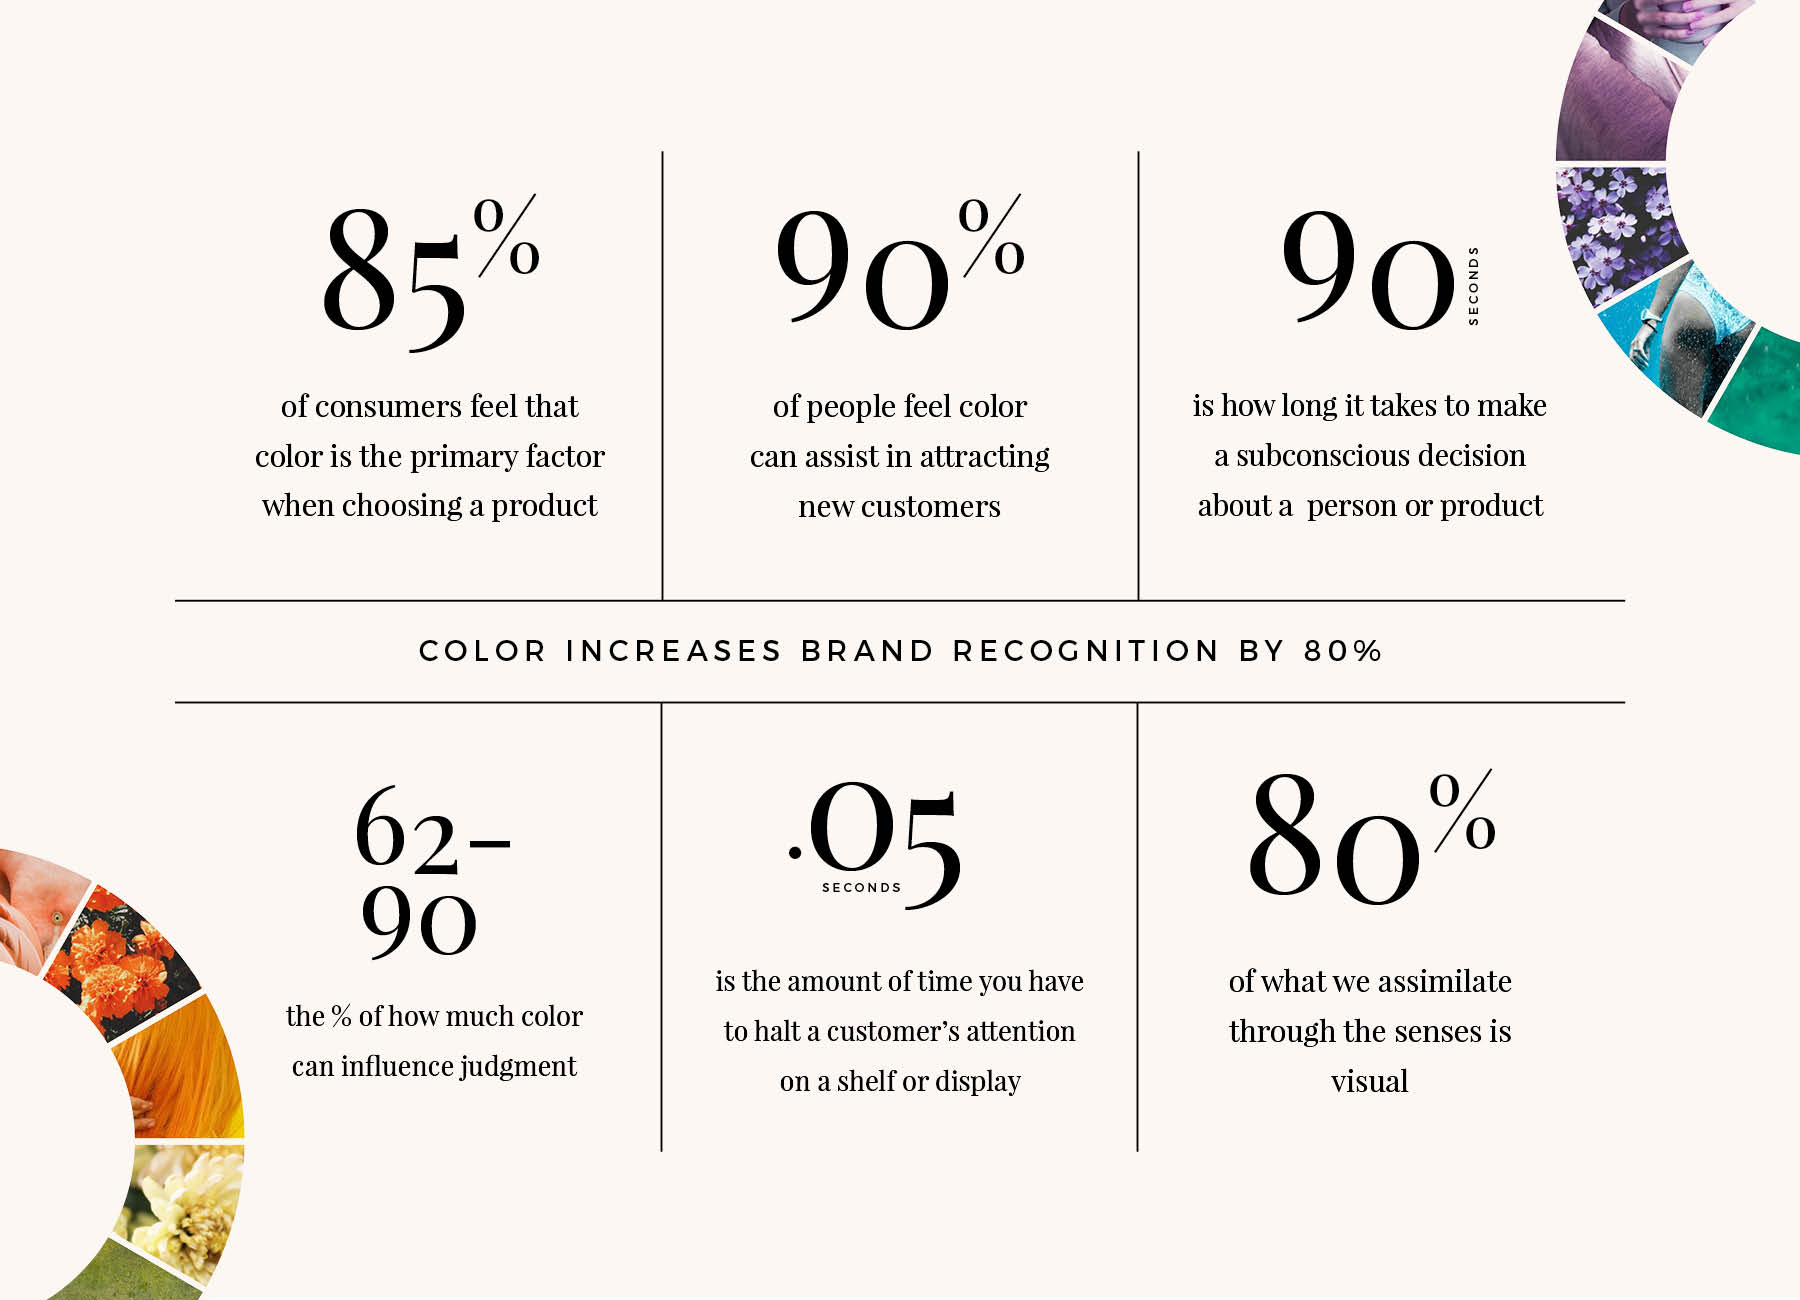 Color effects consumer behavior / here are some color statistics: